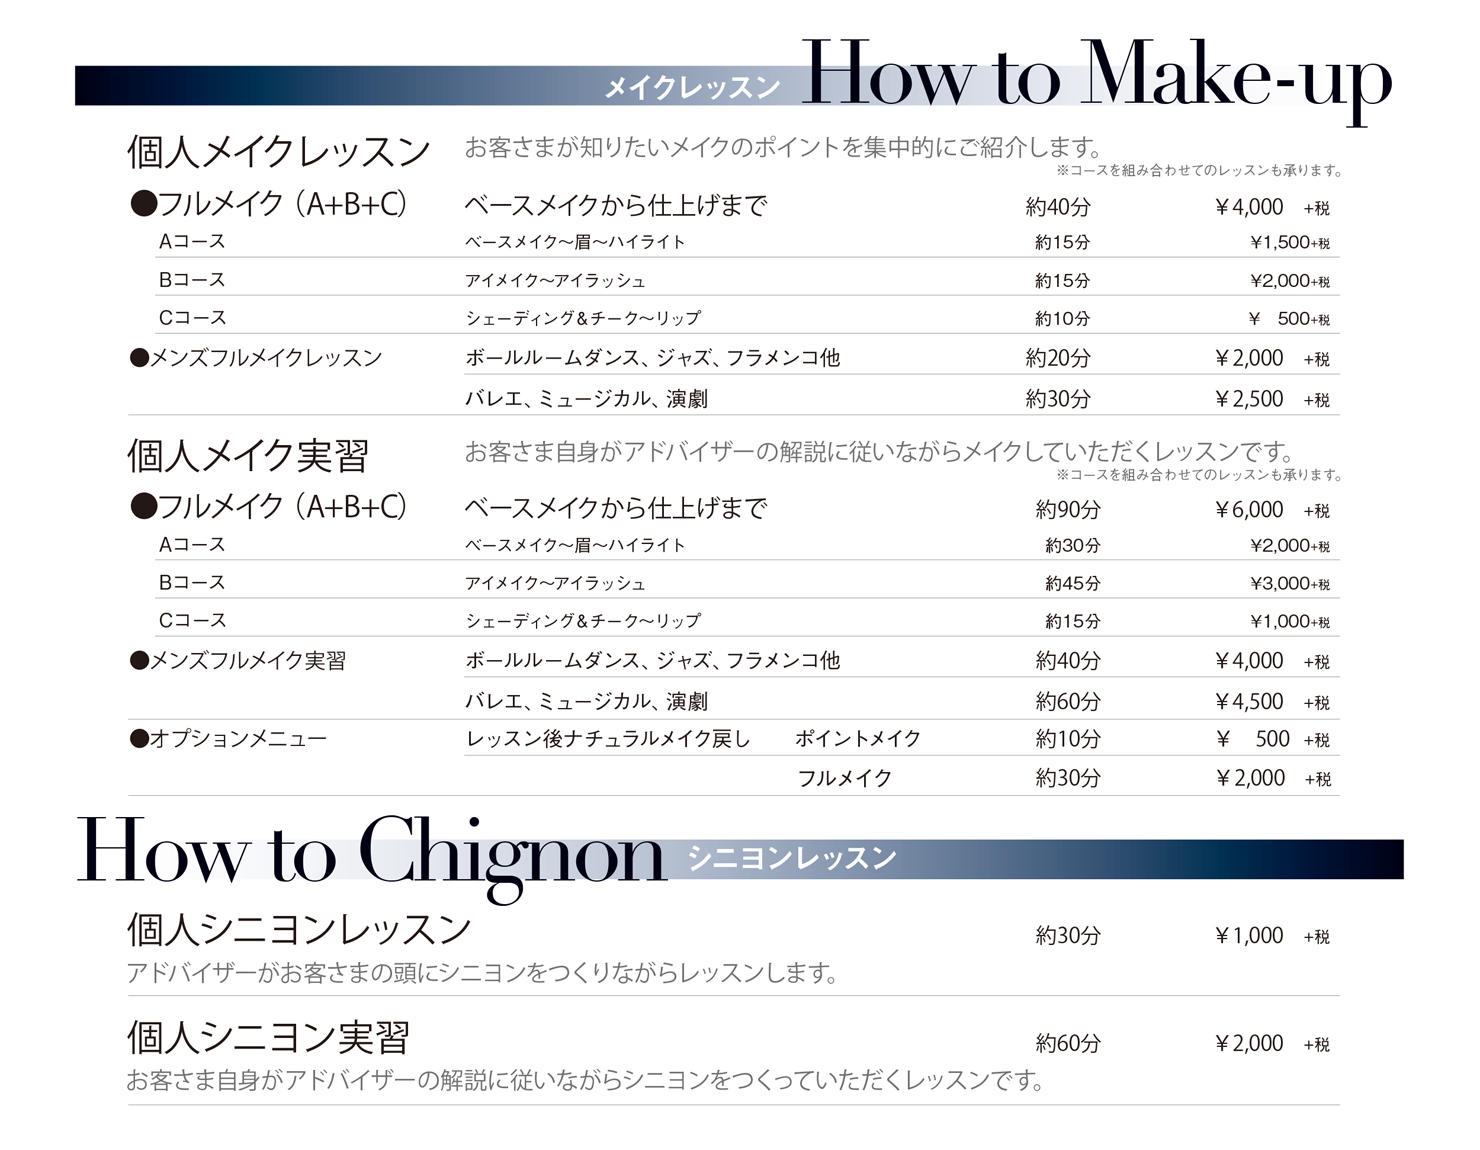 makechignon_price_list_funabashi.jpg